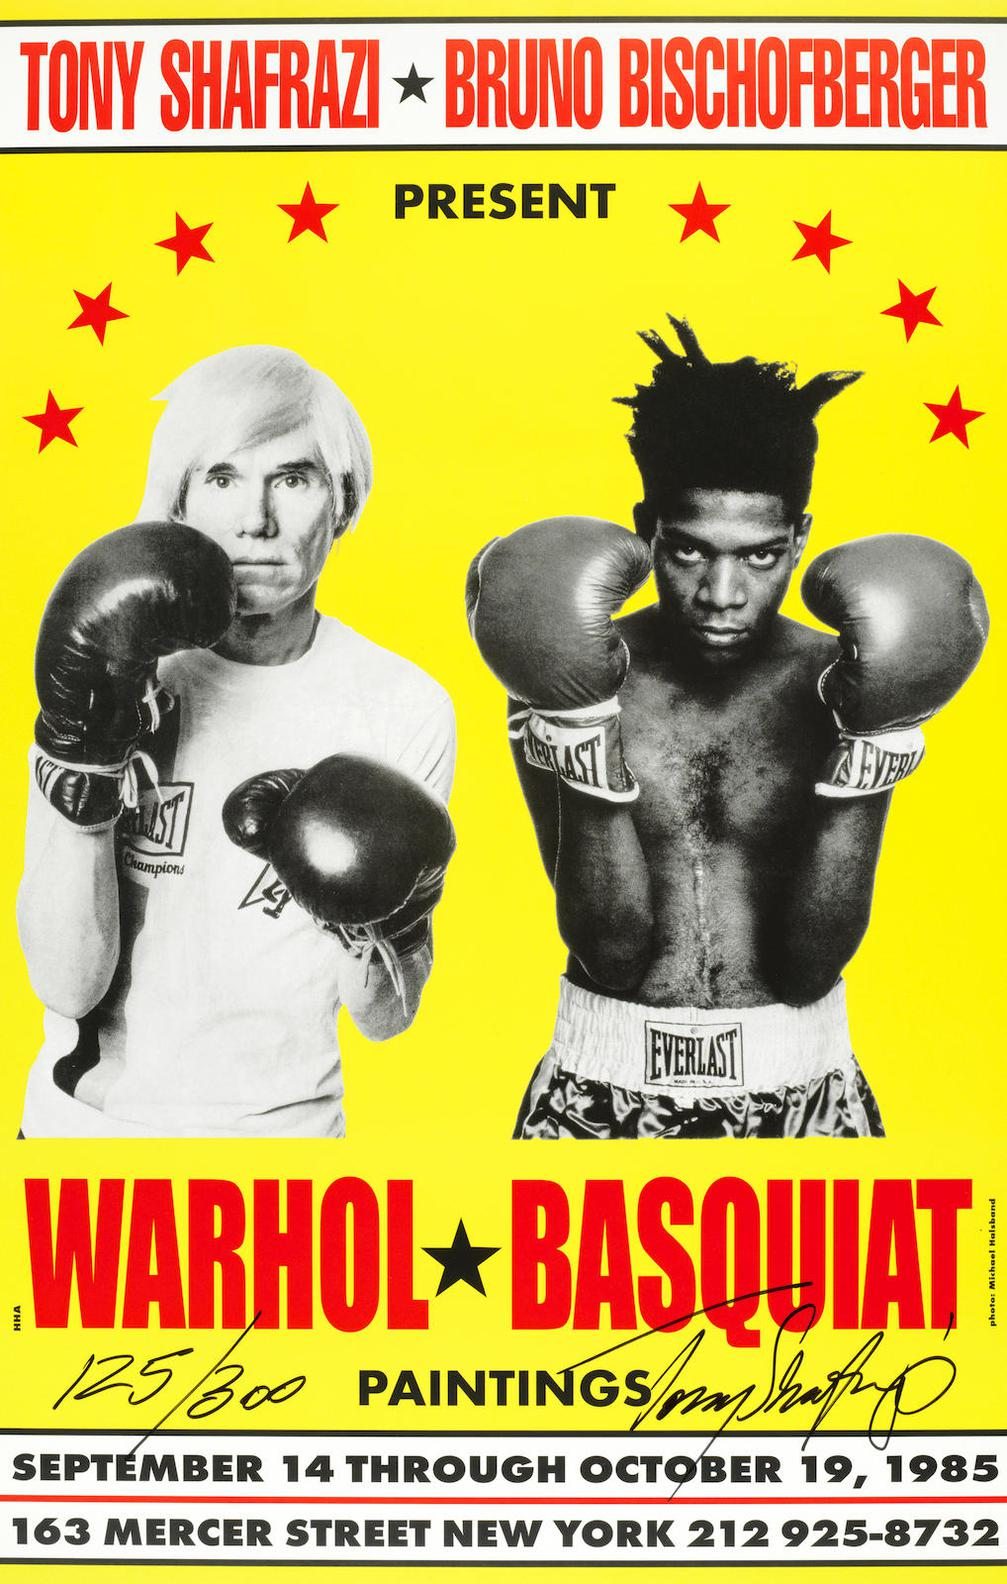 Jean-Michel Basquiat And Andy Warhol - Poster For Warhol/Basquiat Paintings-1985